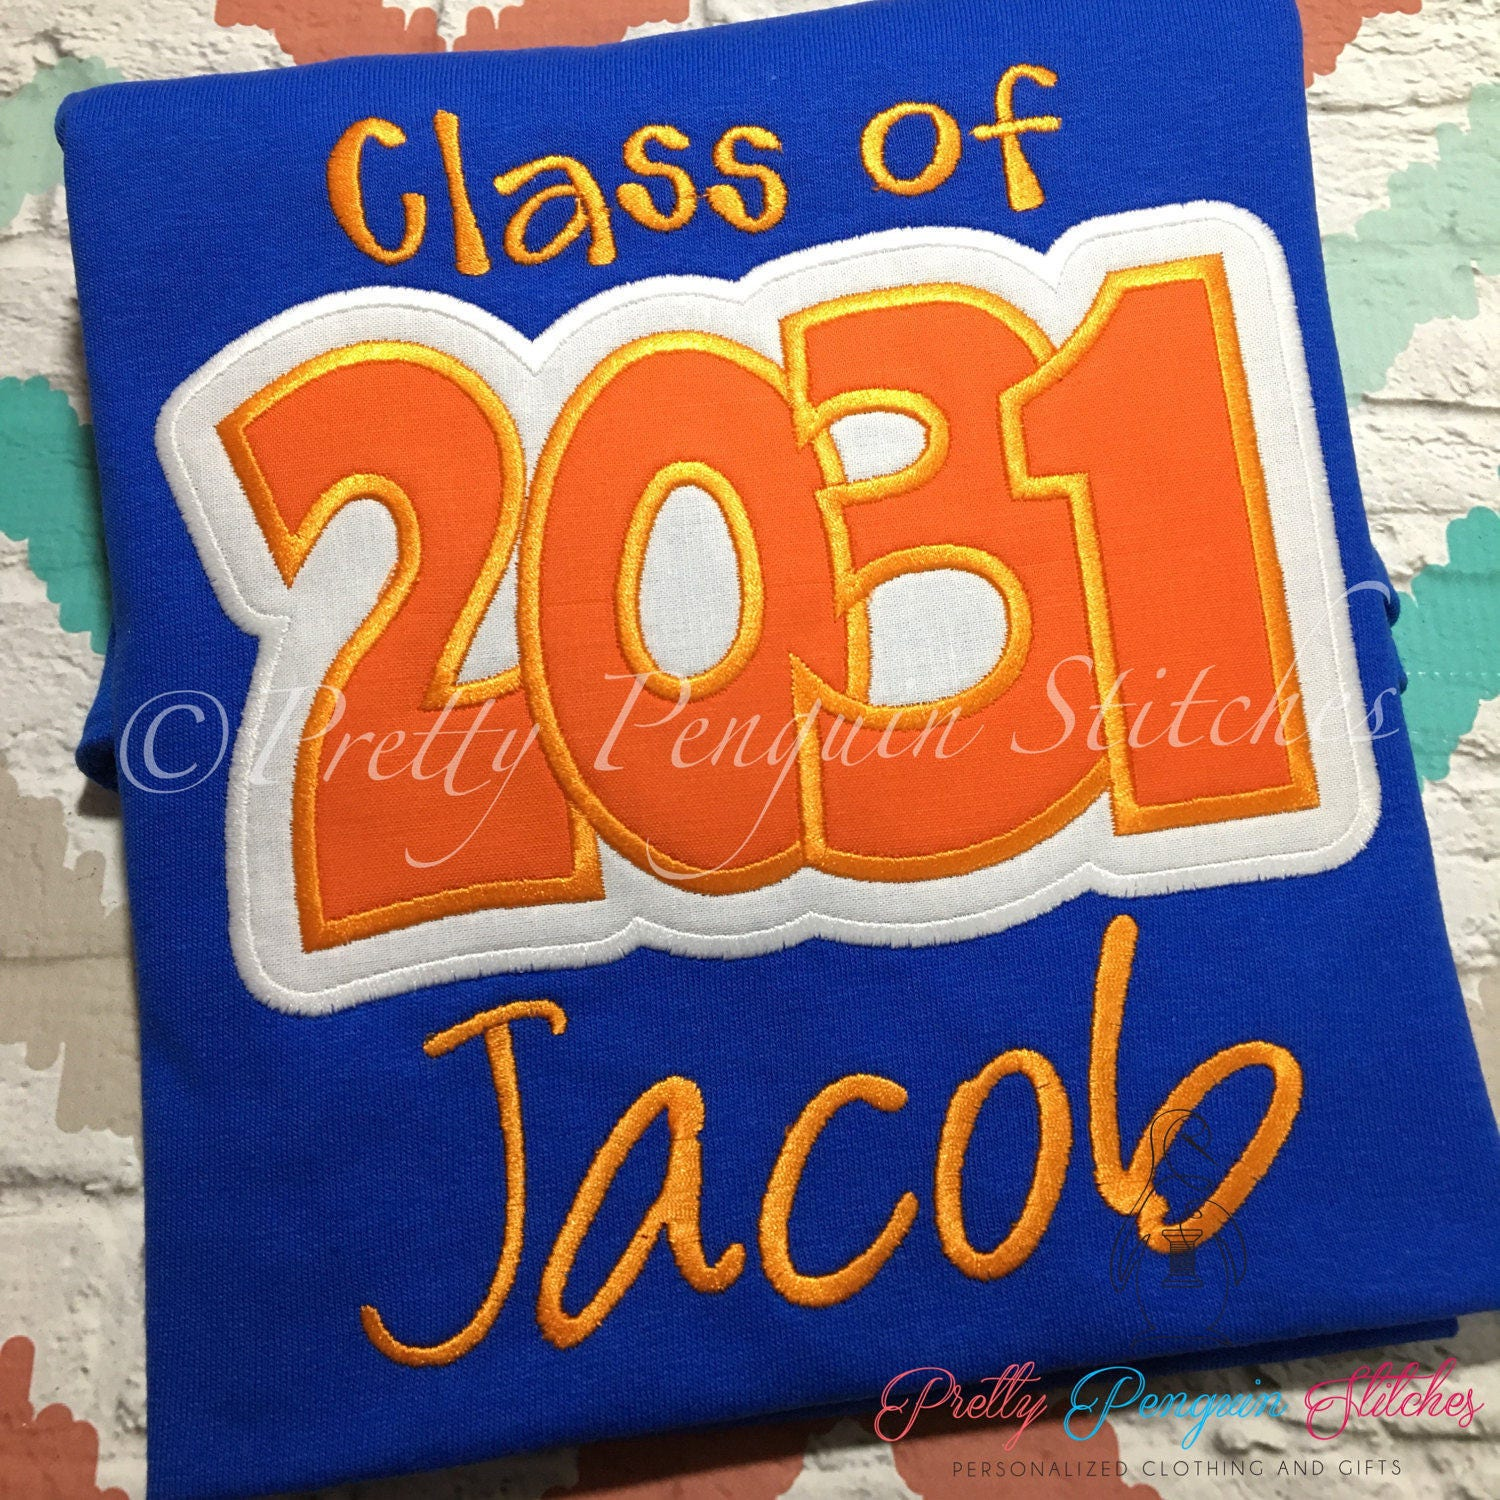 School shirt design your own - Class Of Watch Me Grow Graduation Shirt Design Your Own First Day Of School Class Of 2029 2028 2027 2030 2031 Embroidered